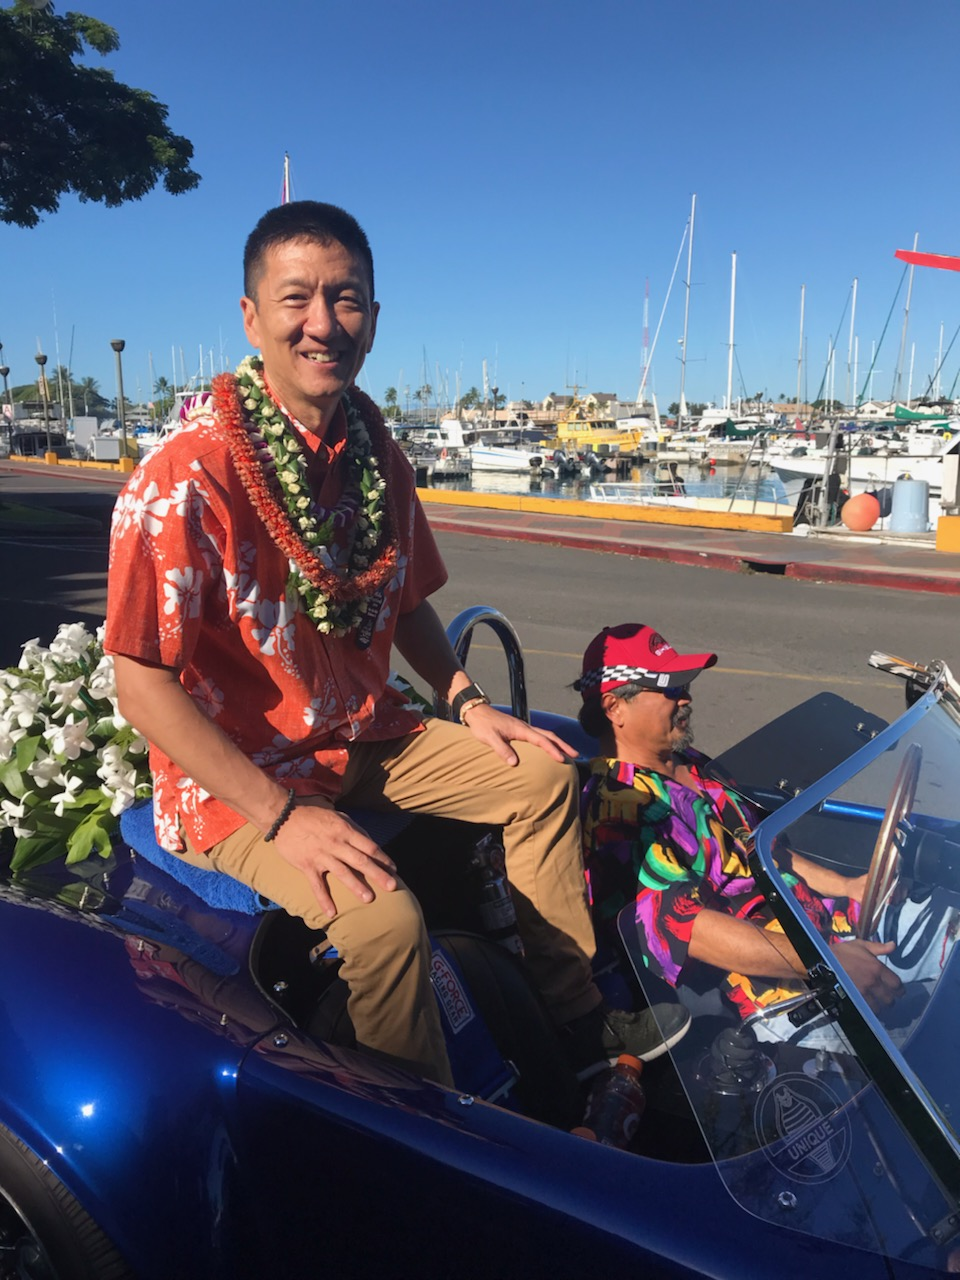 Lt. Governor Chin in the 72nd Annual Aloha Festival Floral Parade